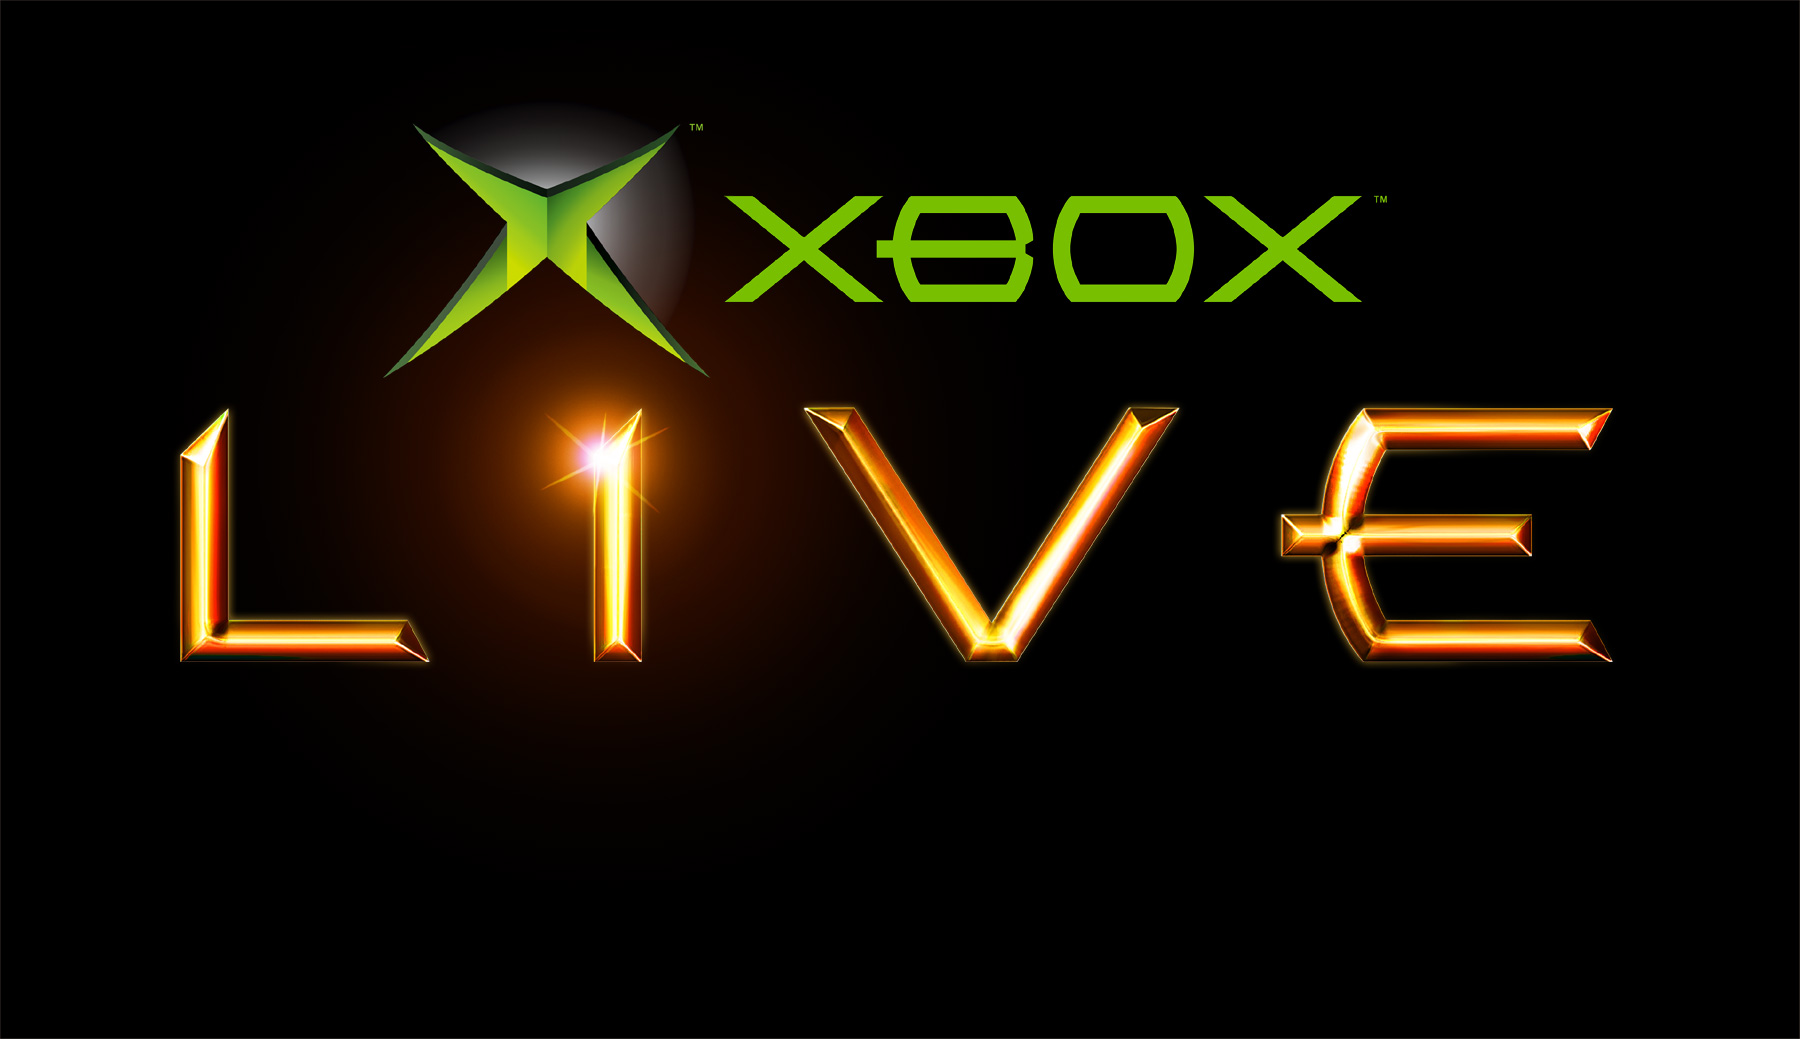 xbox-live-xbox-live: www.lo-ping.org/2013/05/23/update-xbox-live-hacked-user-details...